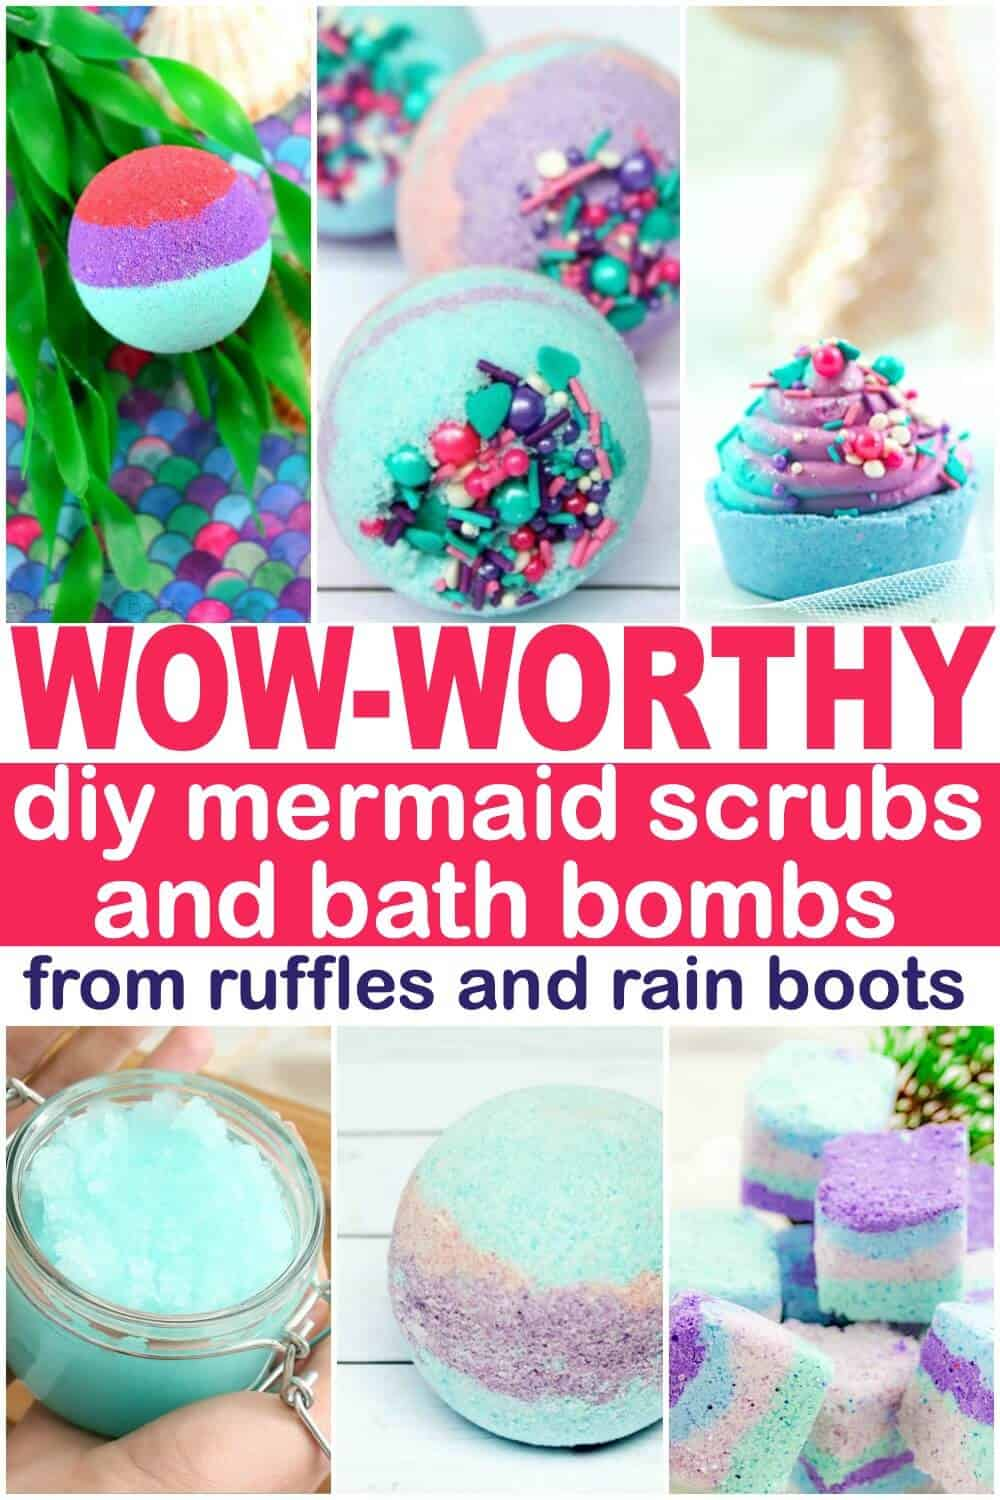 6 image collage of mermaid bath bombs and sugar scrubs with text which reads wow worthy diy mermaid bath